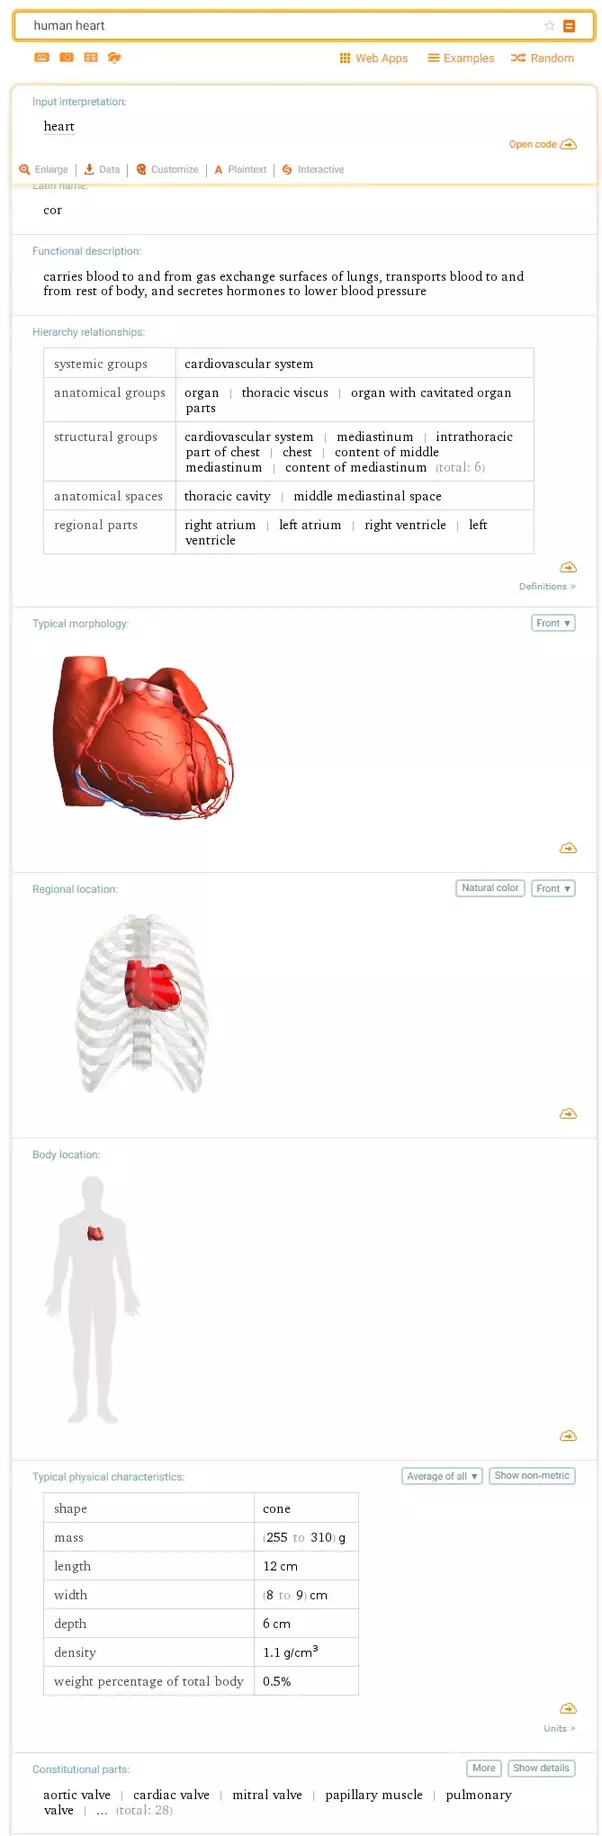 What Is The Best Way To Learn Human Anatomy And Physiology Quora